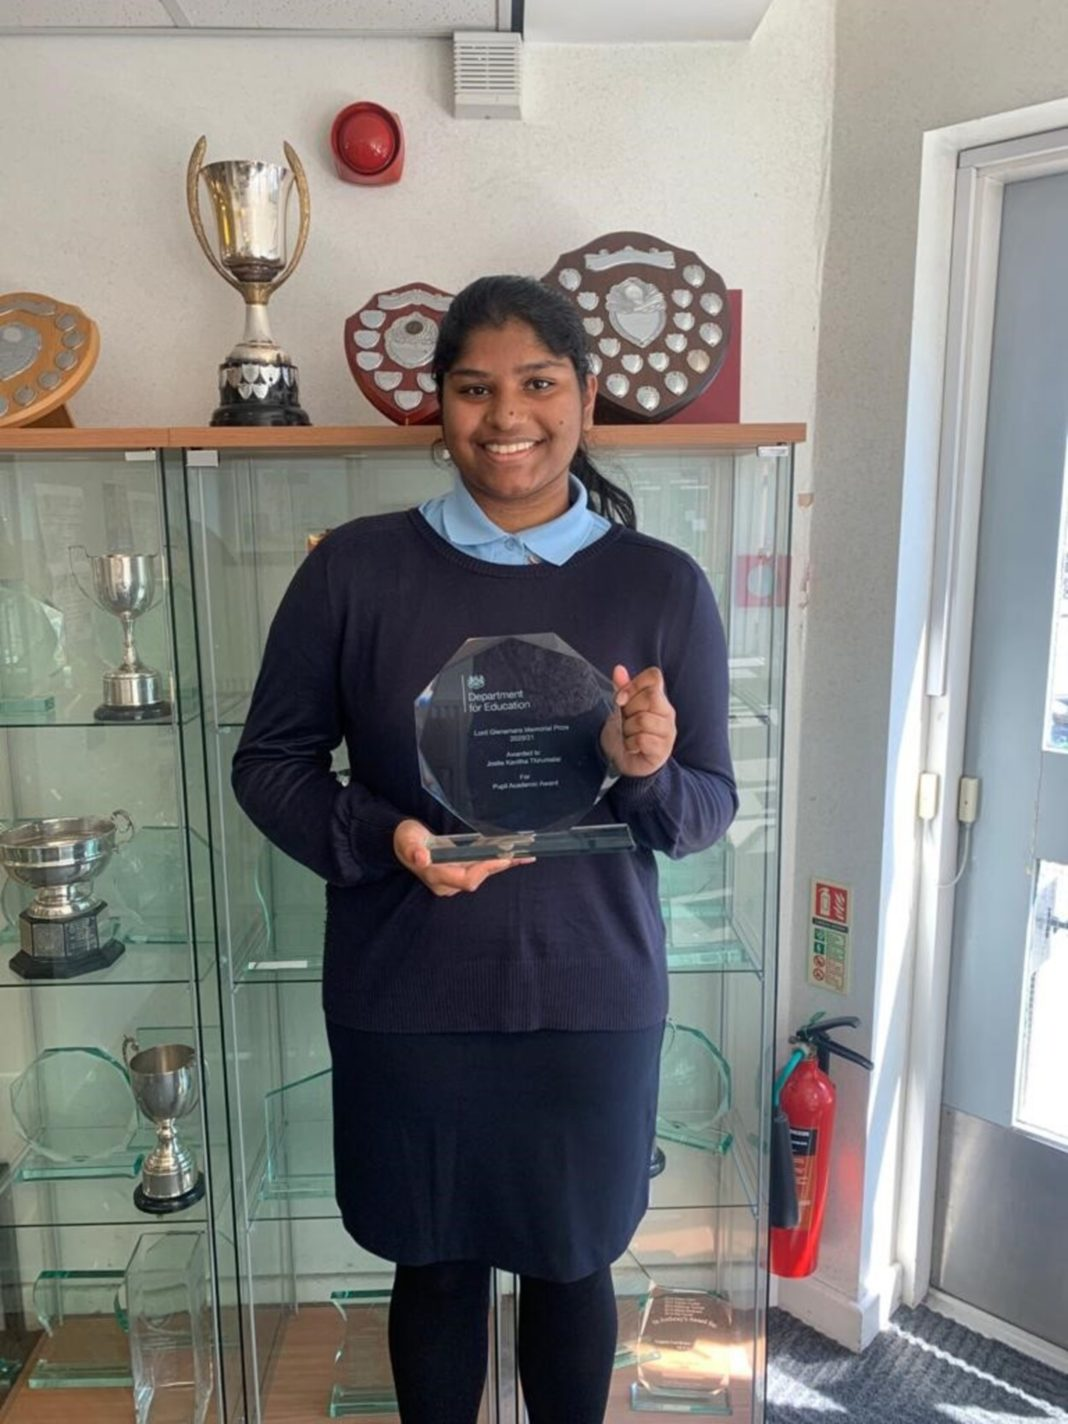 Lord Glenamara Prize Awarded To Josita For Her Exceptional Academic Performance